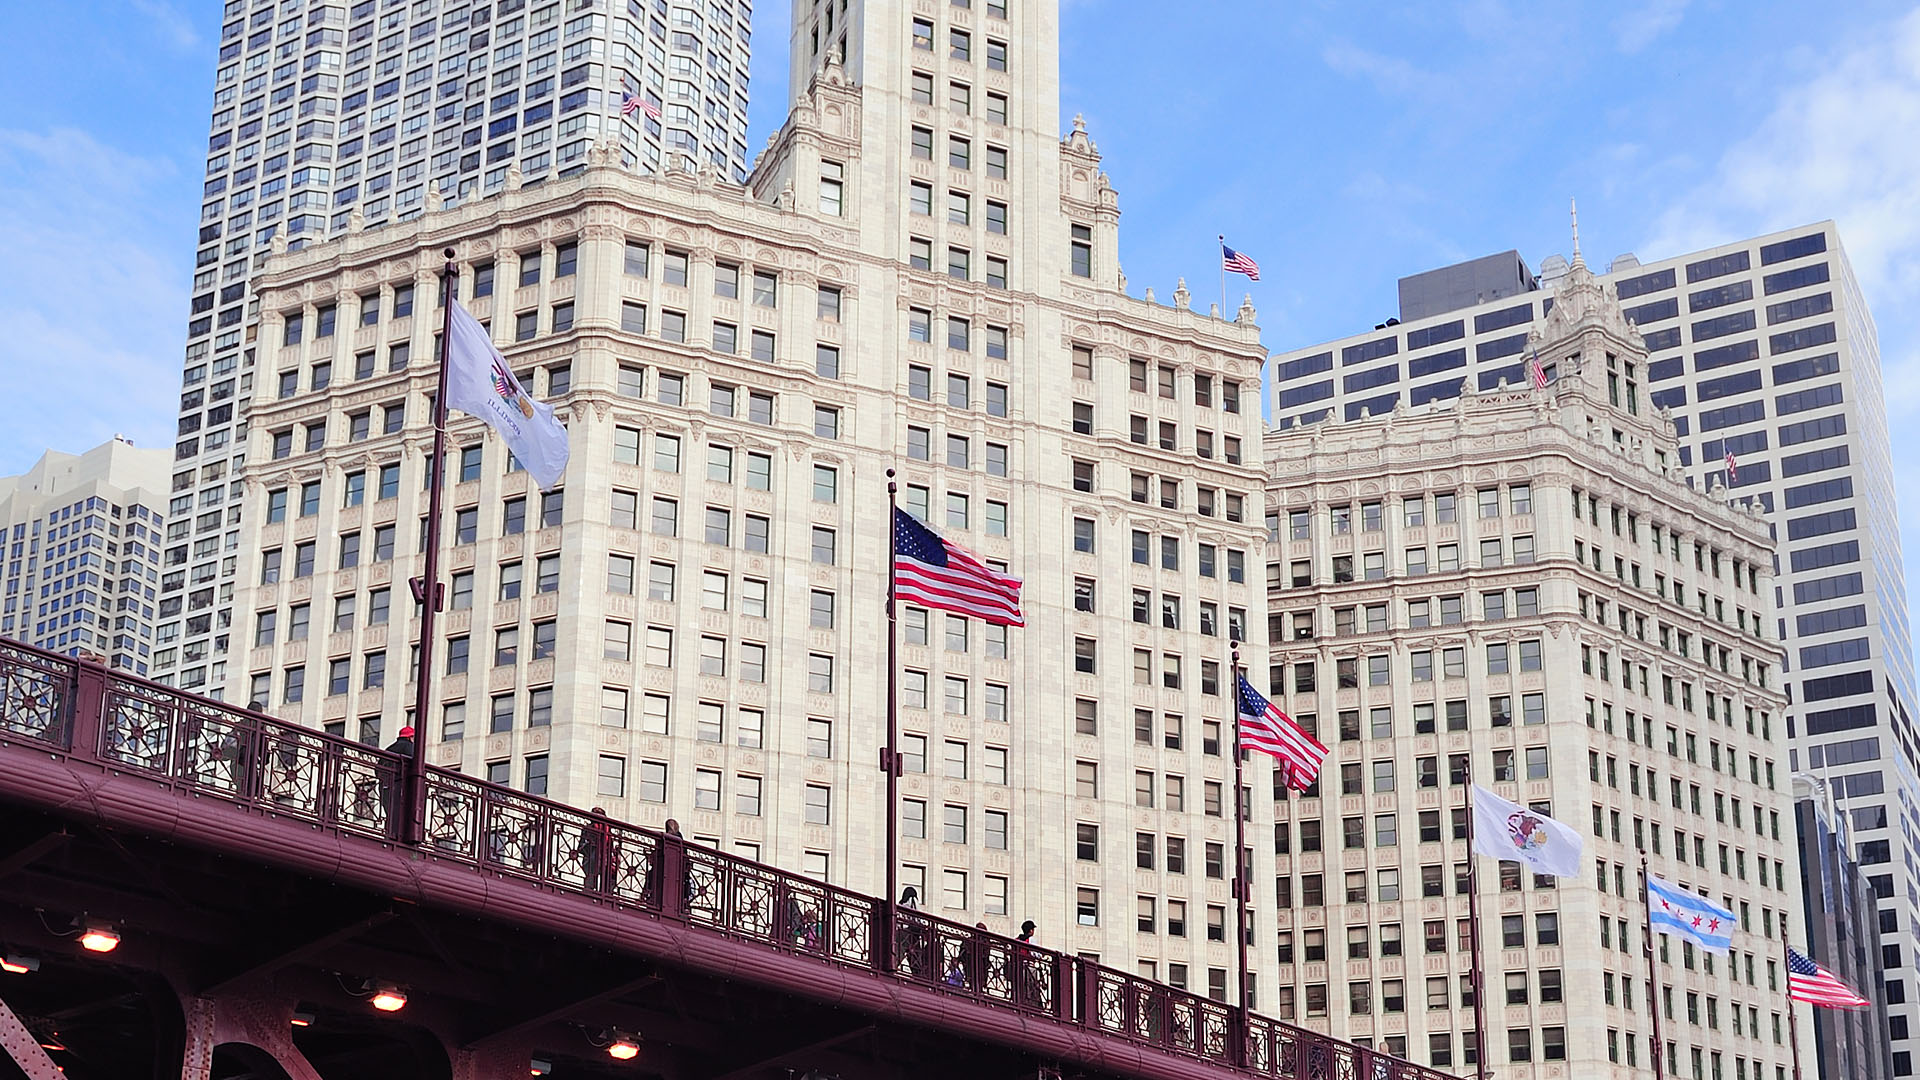 view of Wrigley Building in Chicago